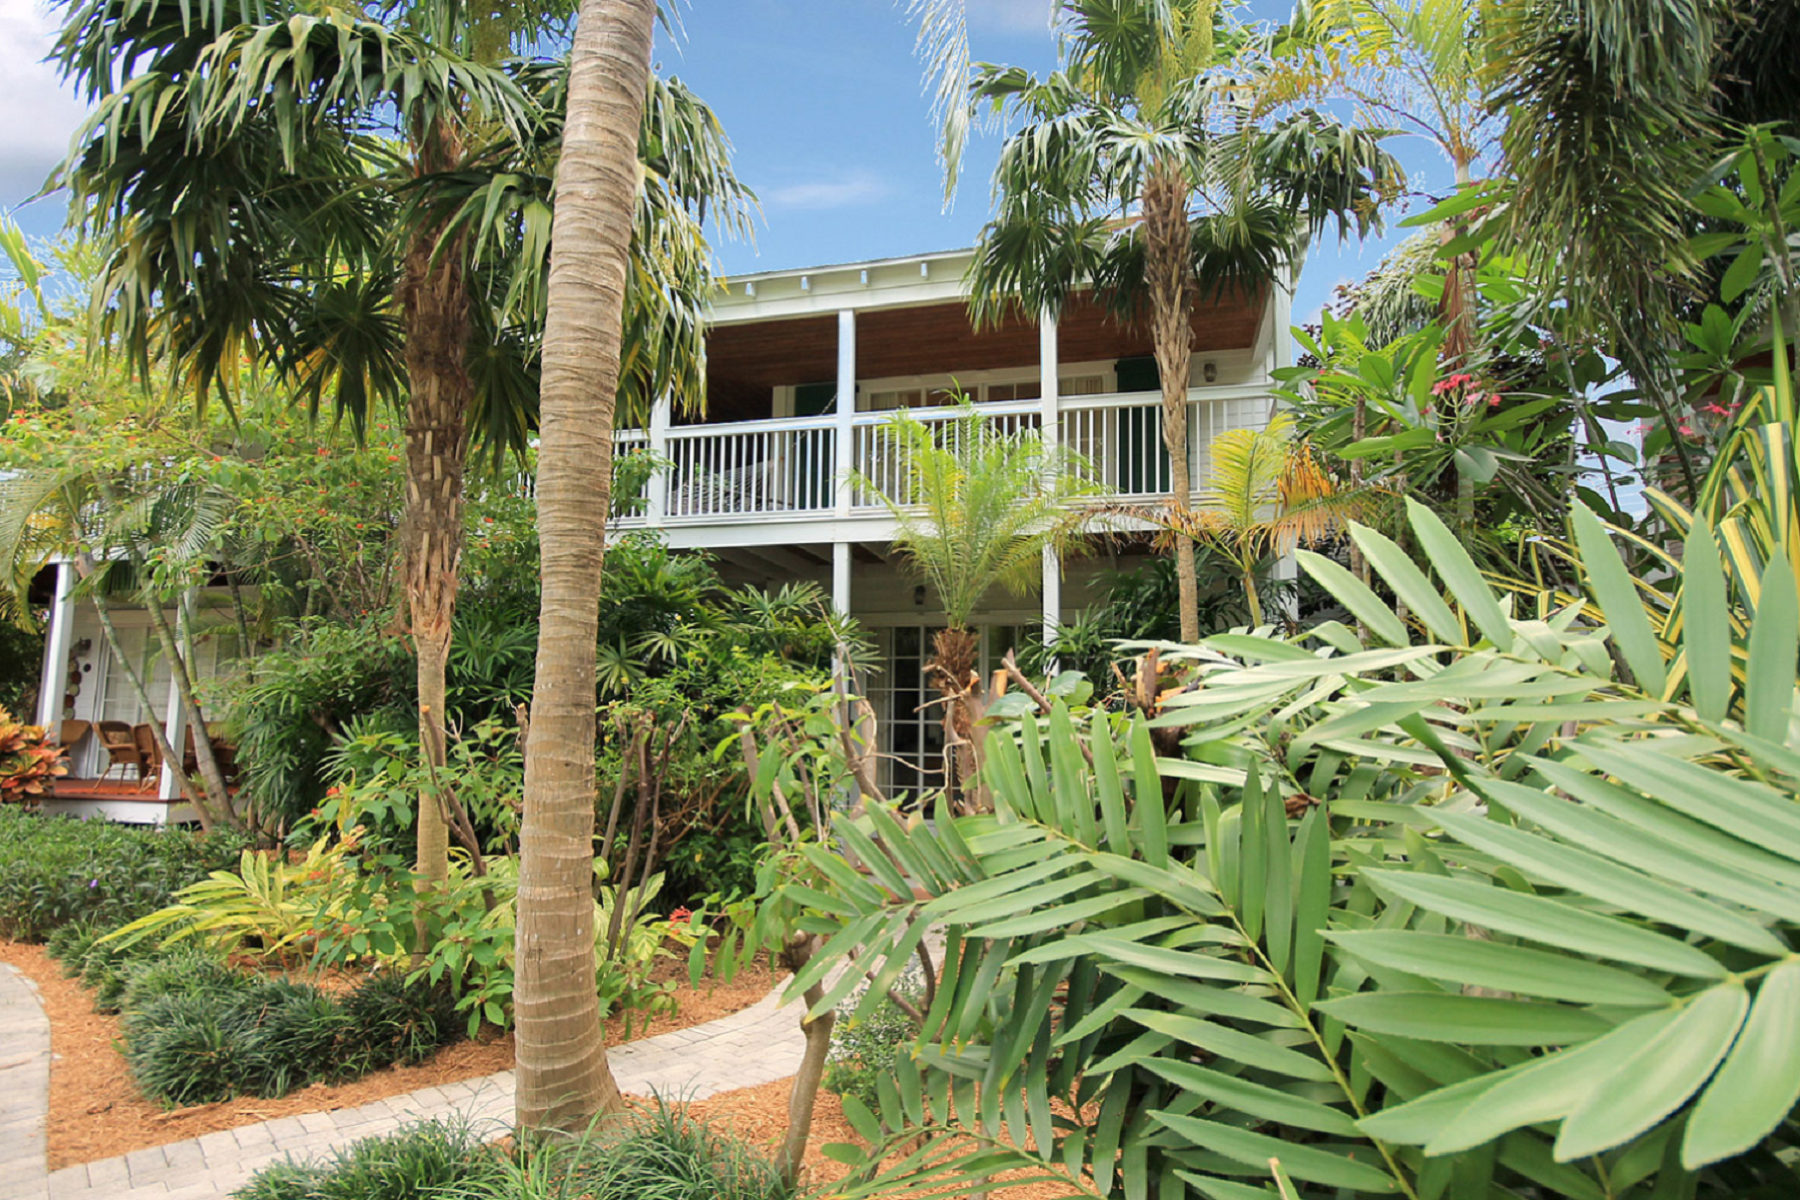 Single Family Home for Sale at Open Water Views on a Private Island 70 Sunset Key Drive Key West, Florida 33040 United States